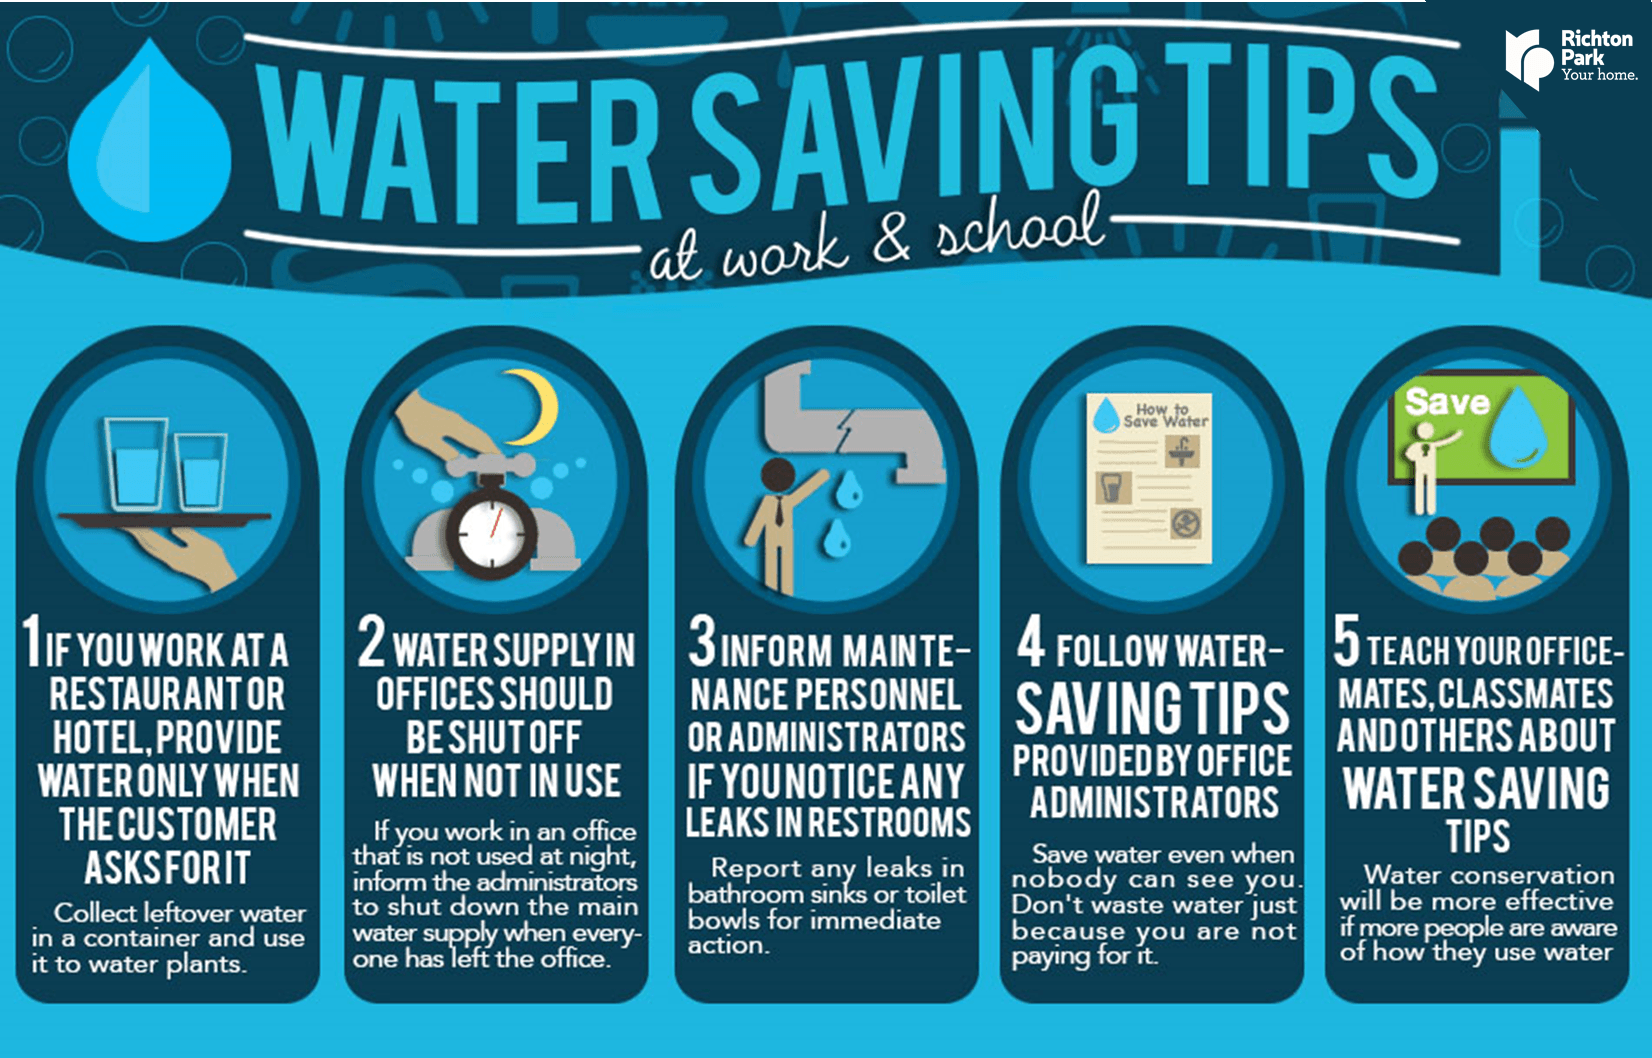 WaterSavingTips WorkSchool